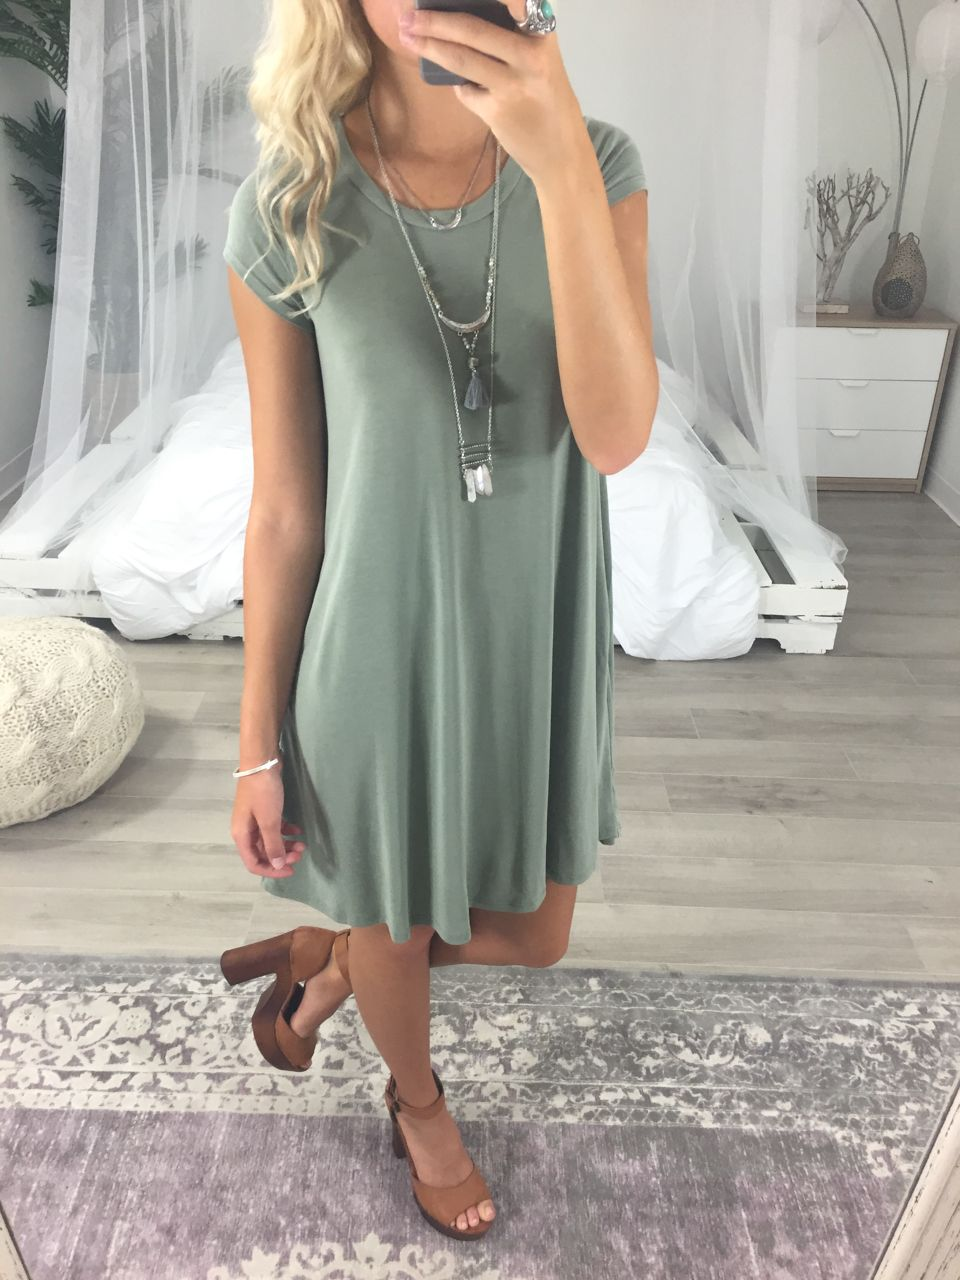 outfit of the day ootd #ootd outfits | Fashion Outfits # ...